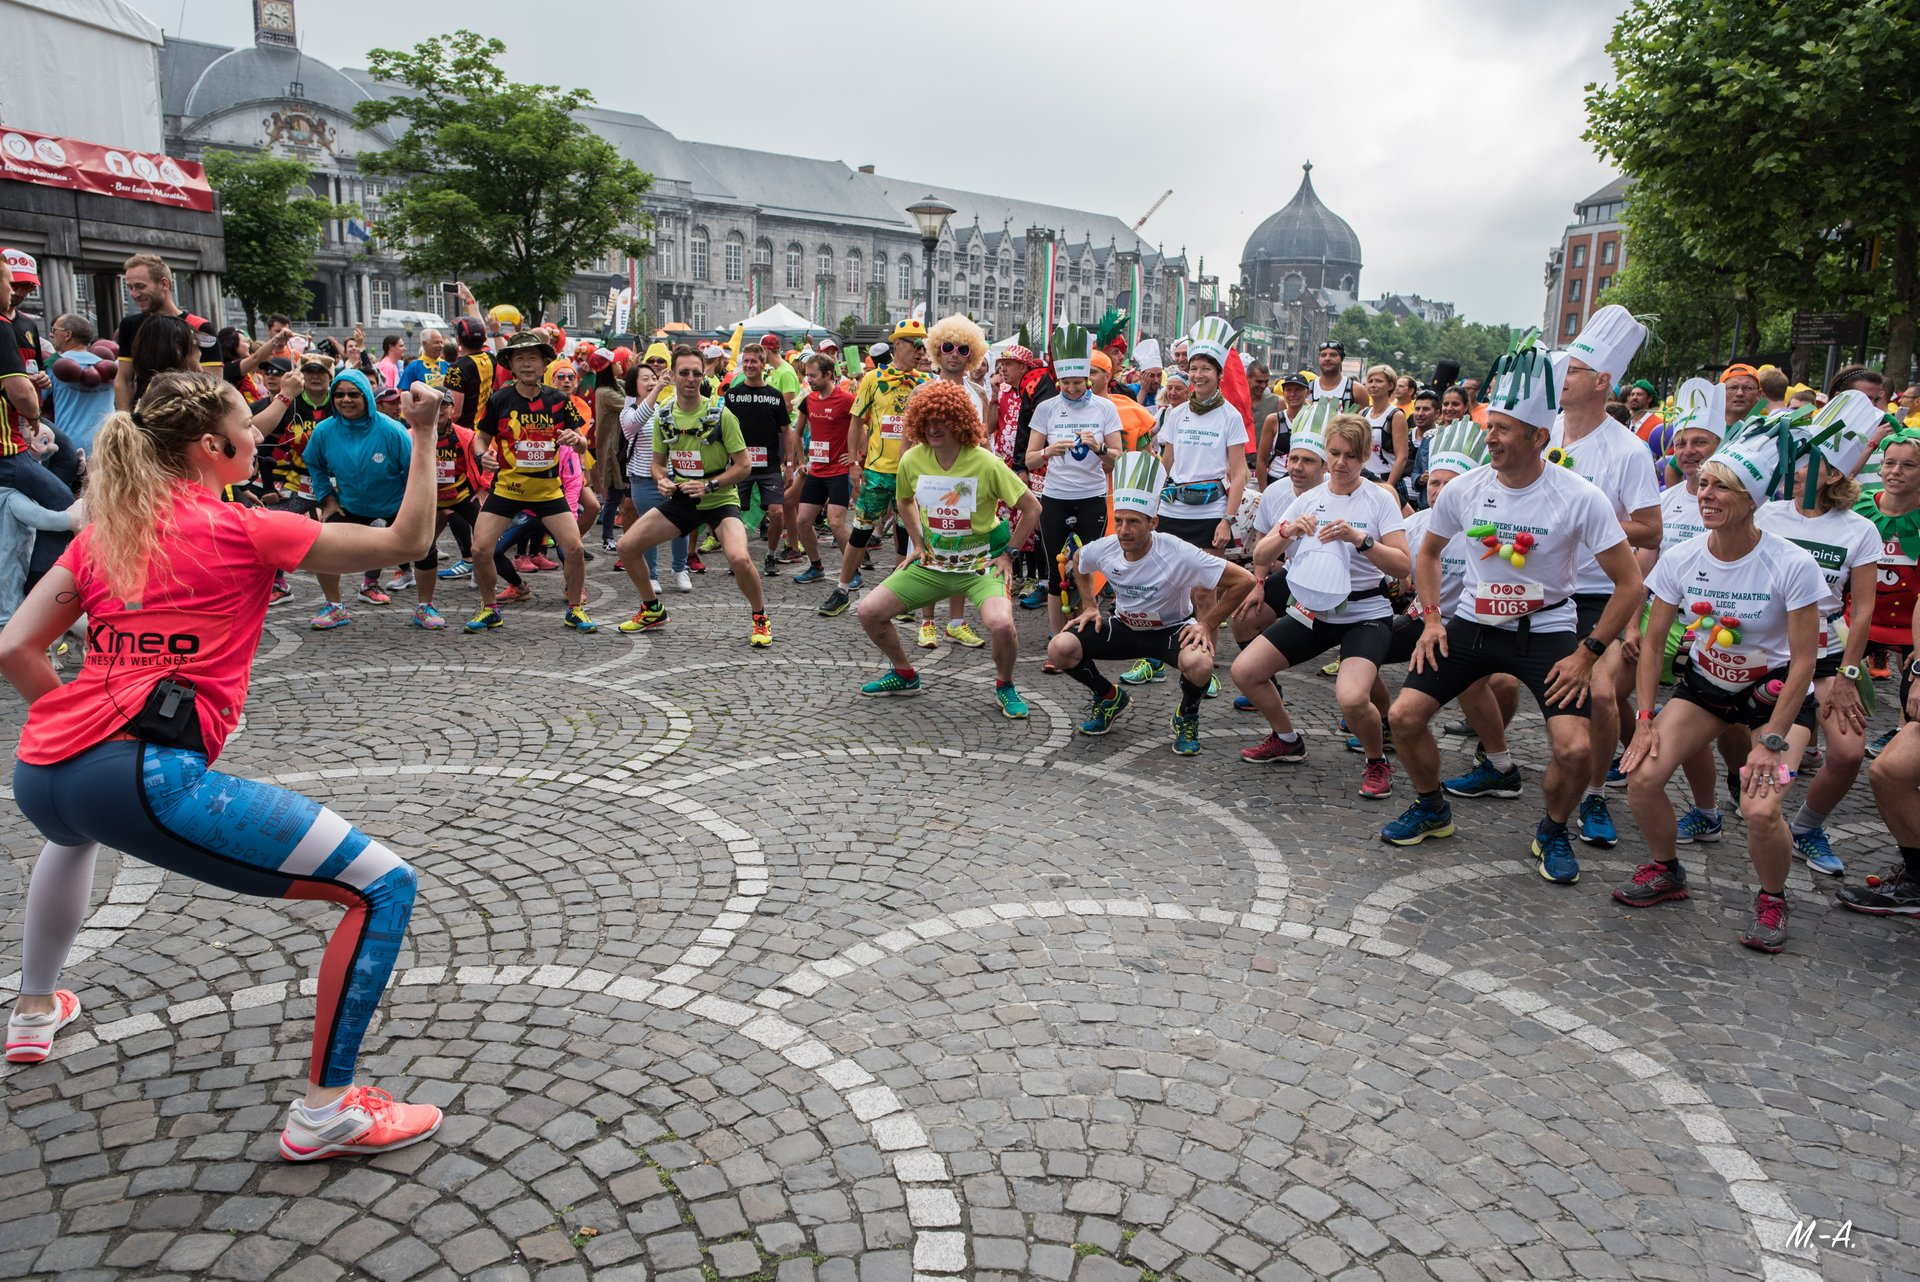 Beer Lovers' Marathon in Belgium - Best Season 2020